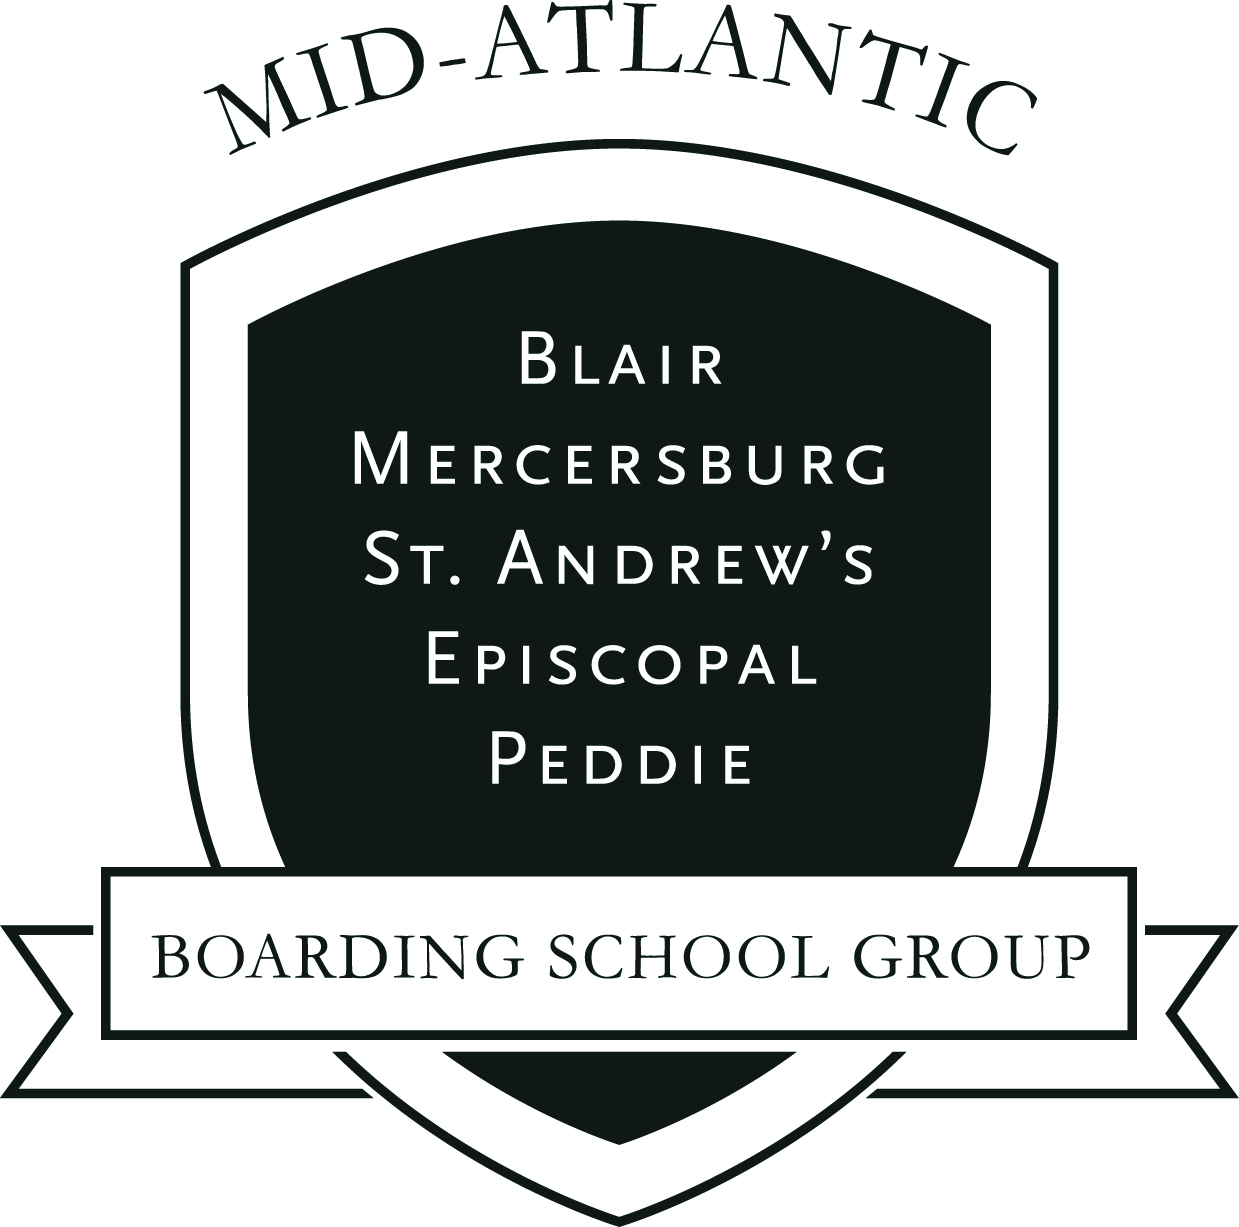 Mid-Atlantic Boarding School Group